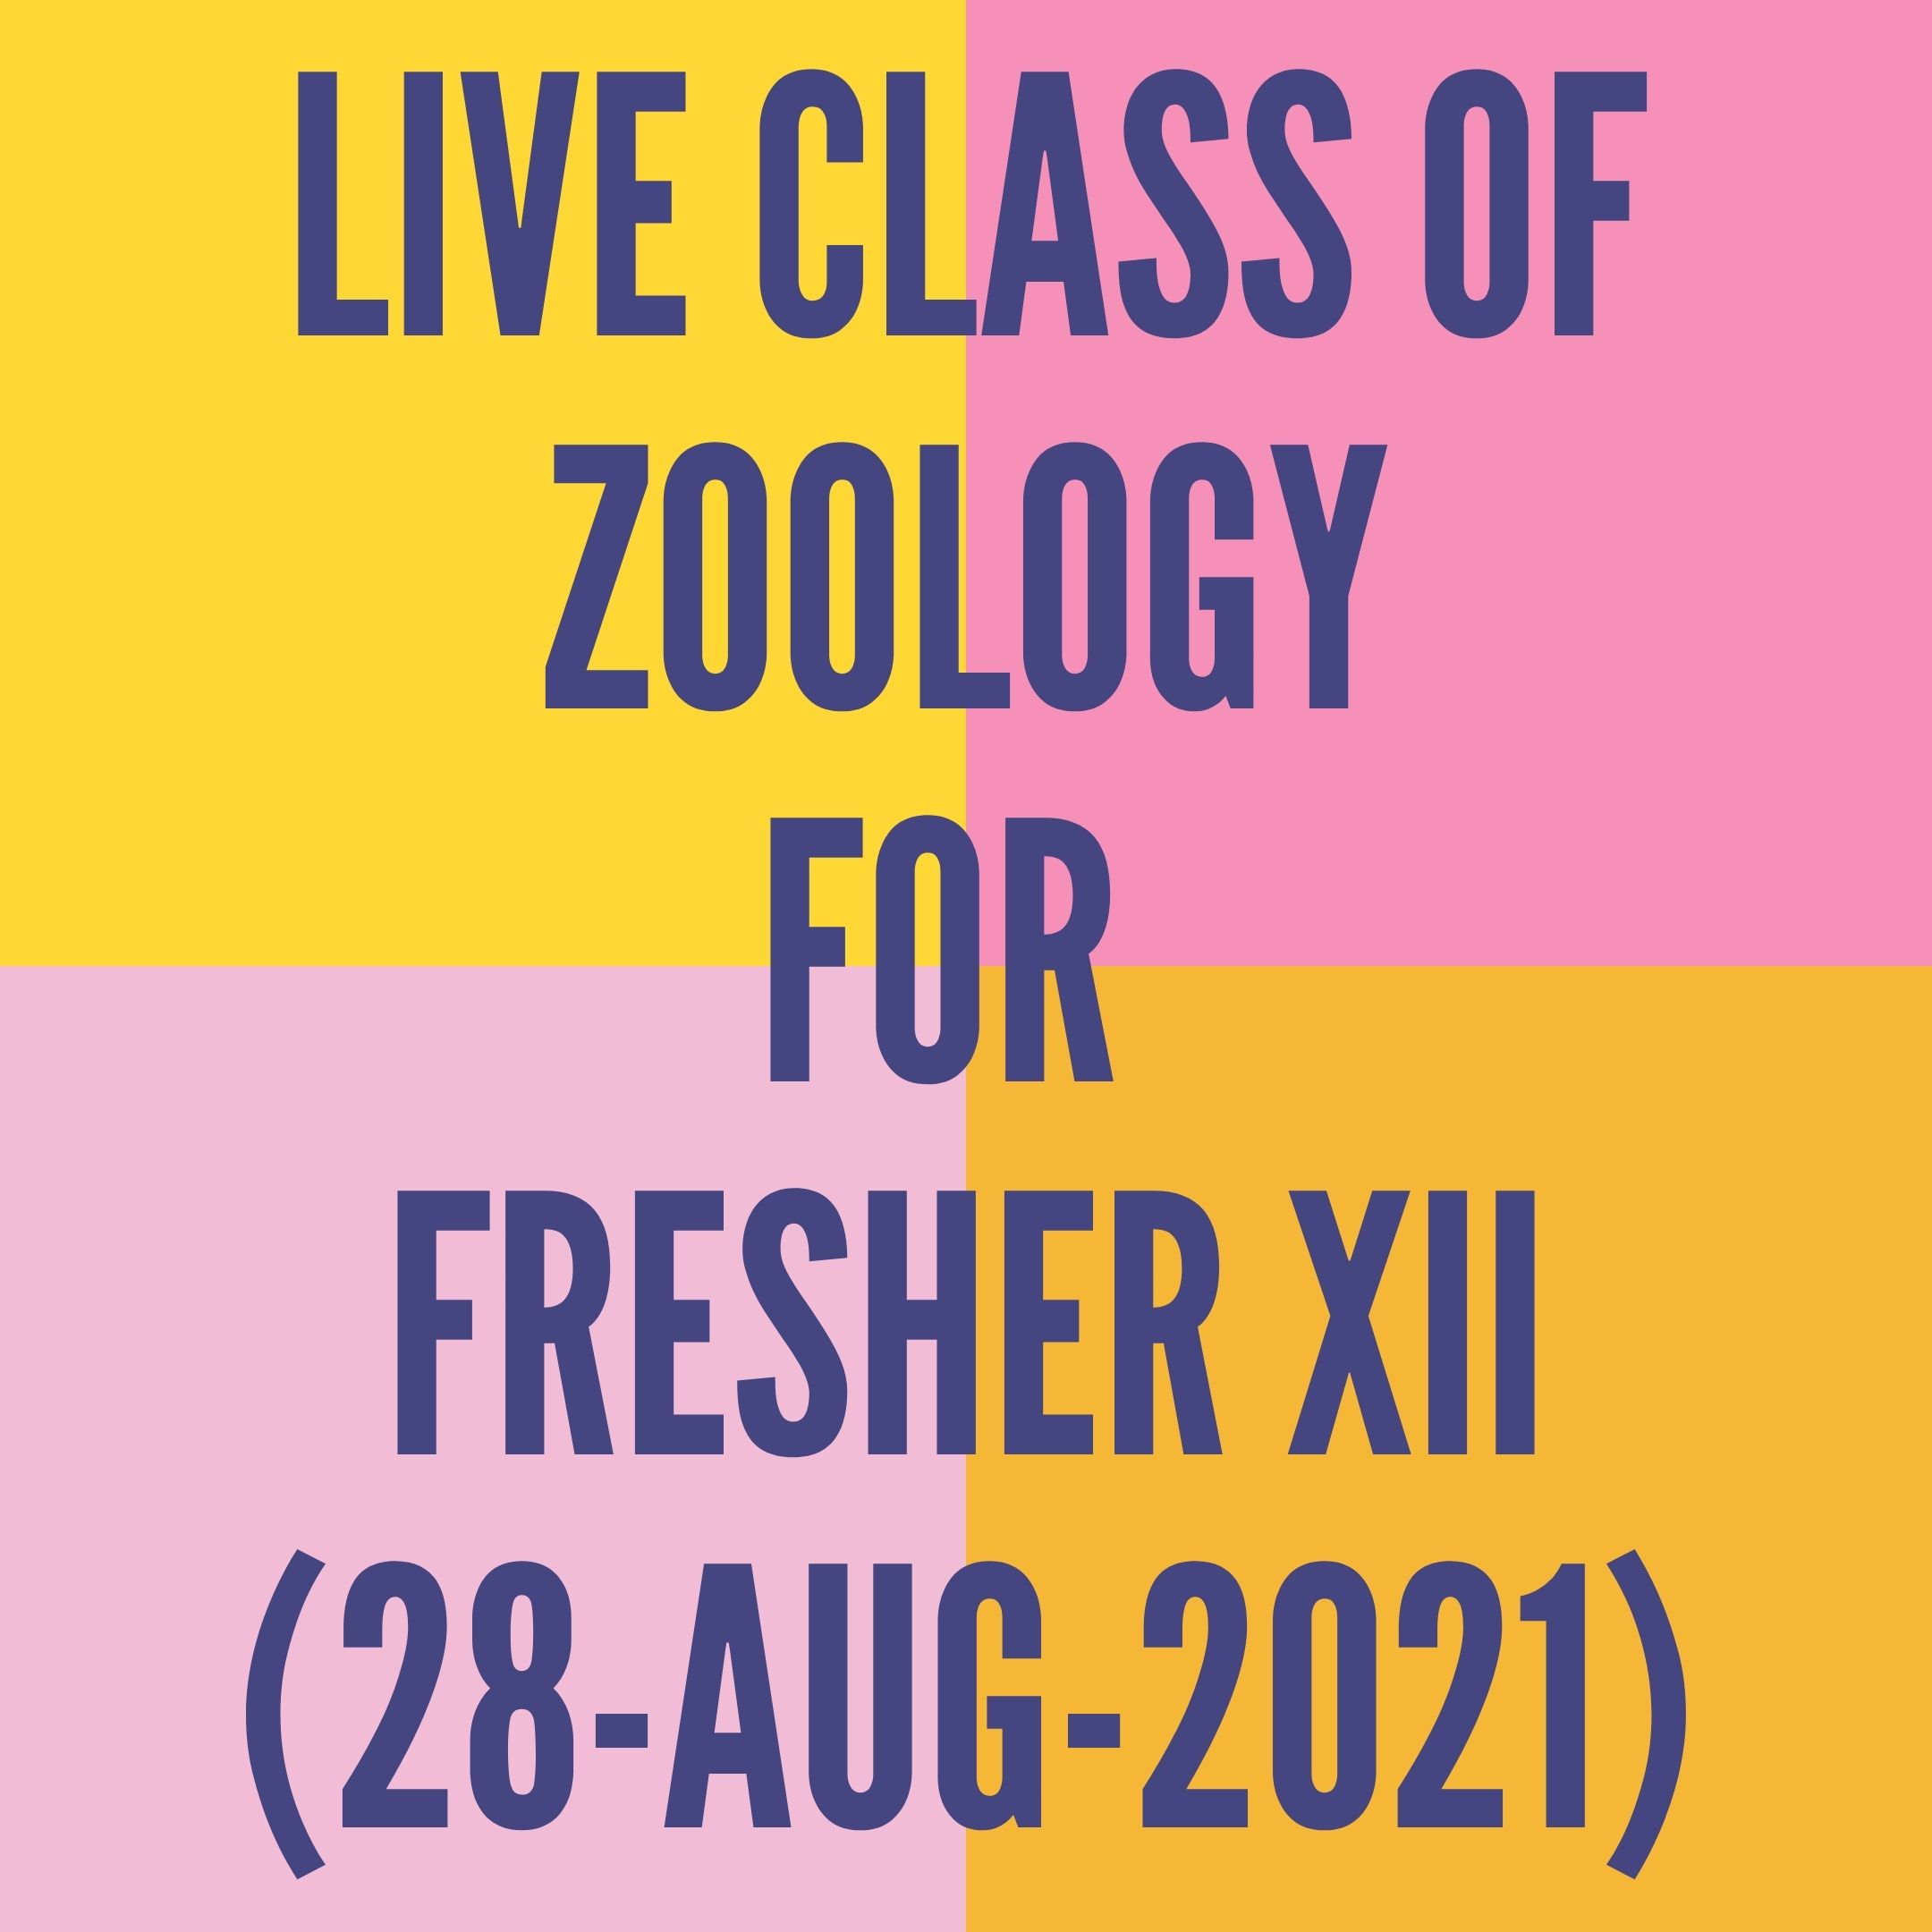 LIVE CLASS OF ZOOLOGY FOR FRESHER XII (28-AUG-2021) HUMAN HEALTH & DISEASE